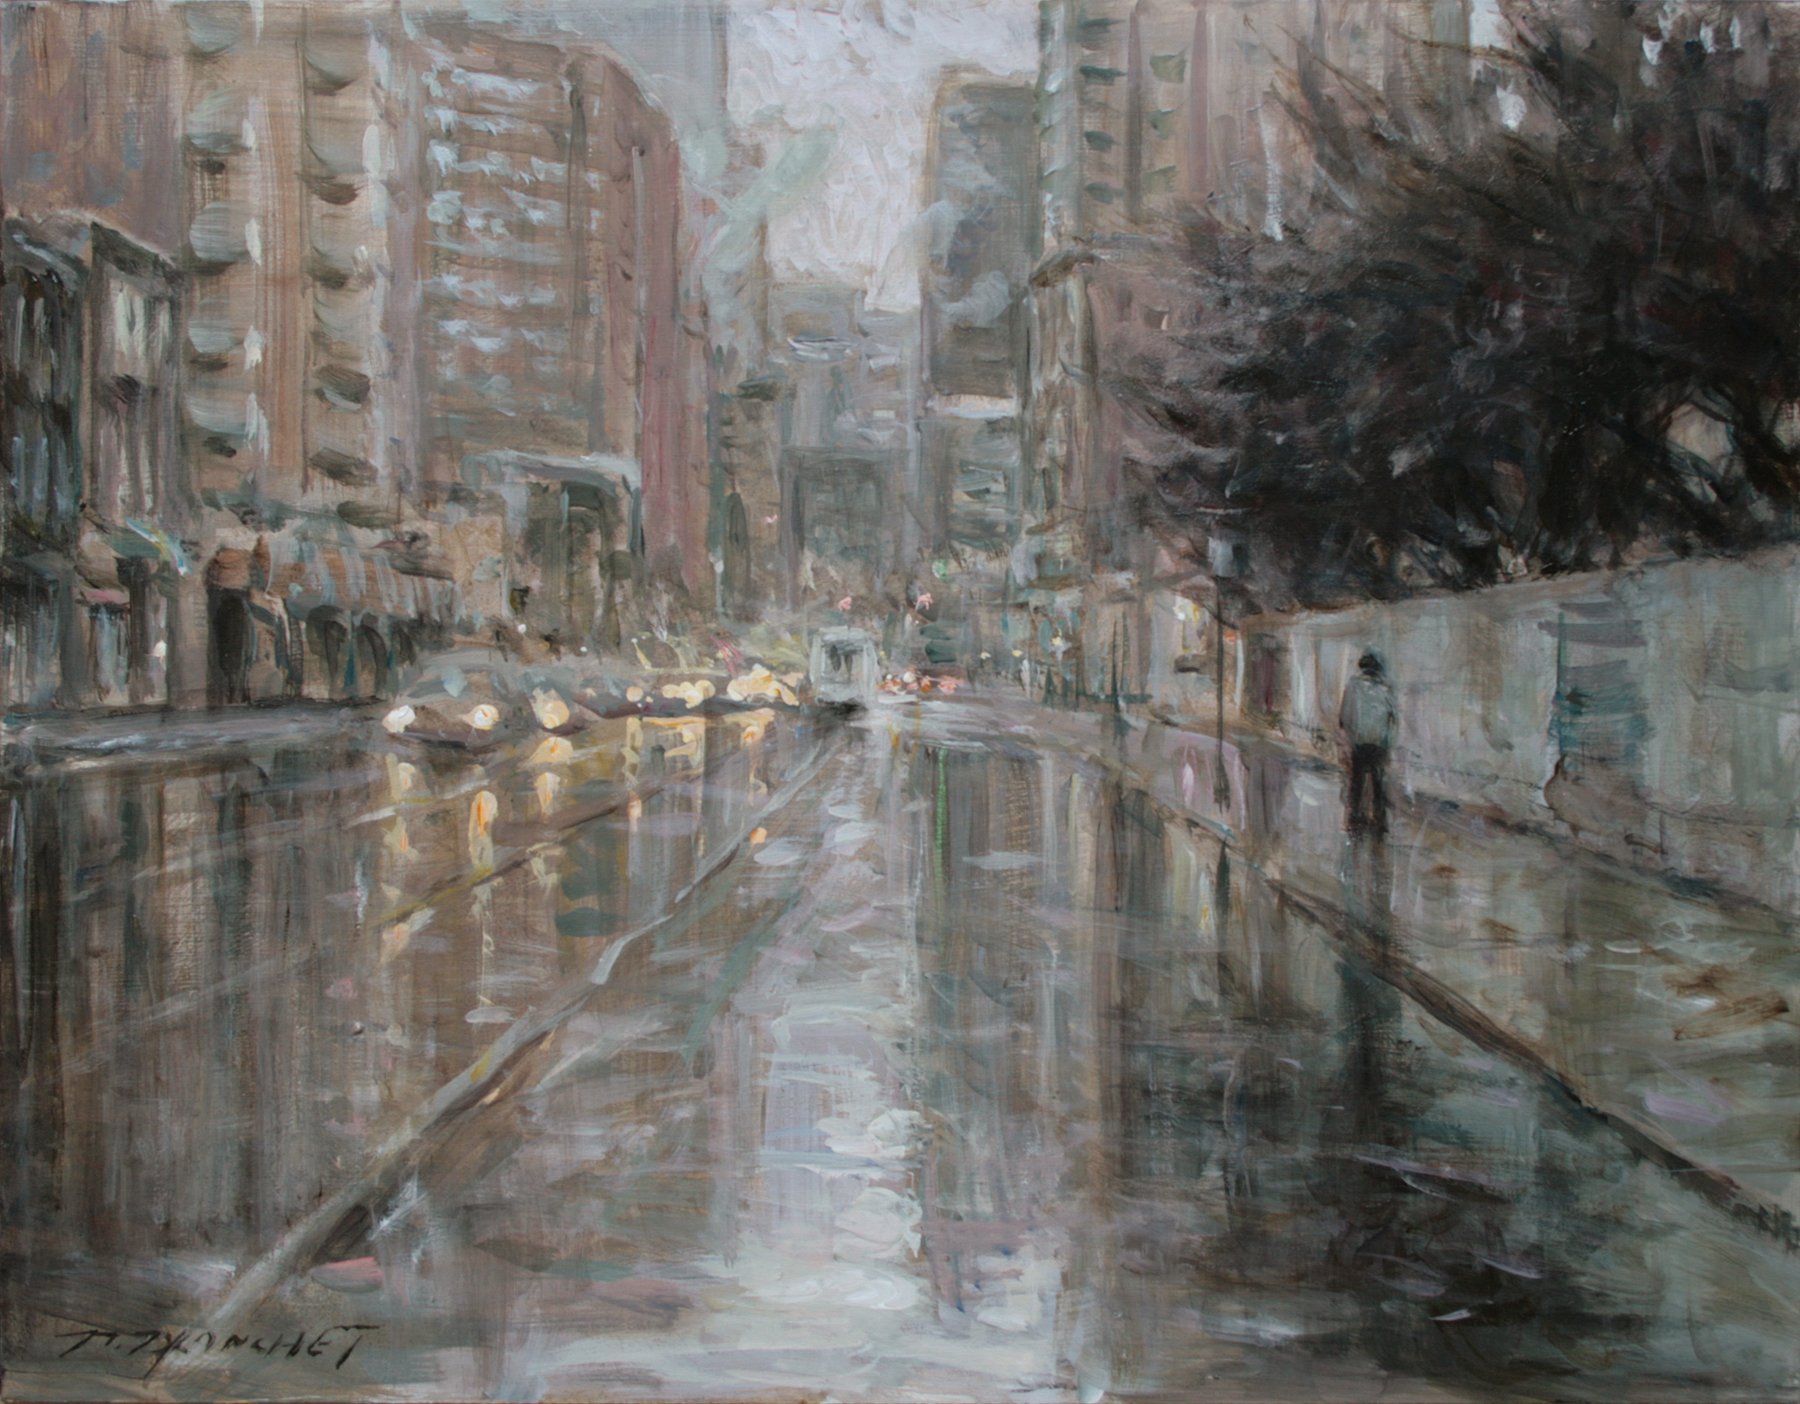 Rainy day Toronto, 14x18